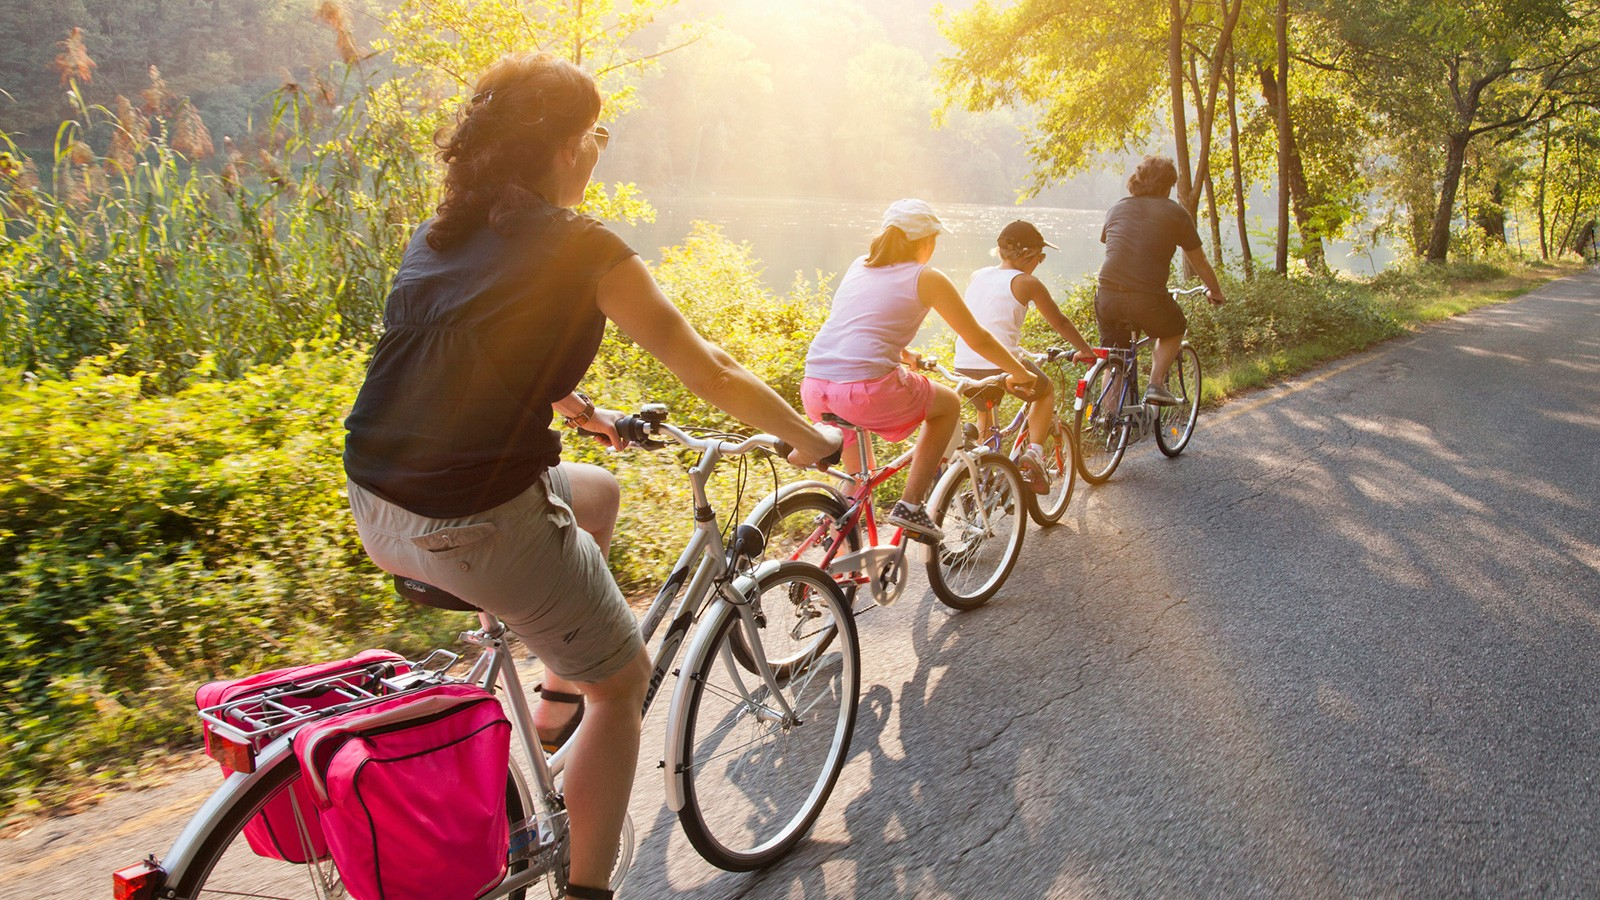 people riding bikes on country road